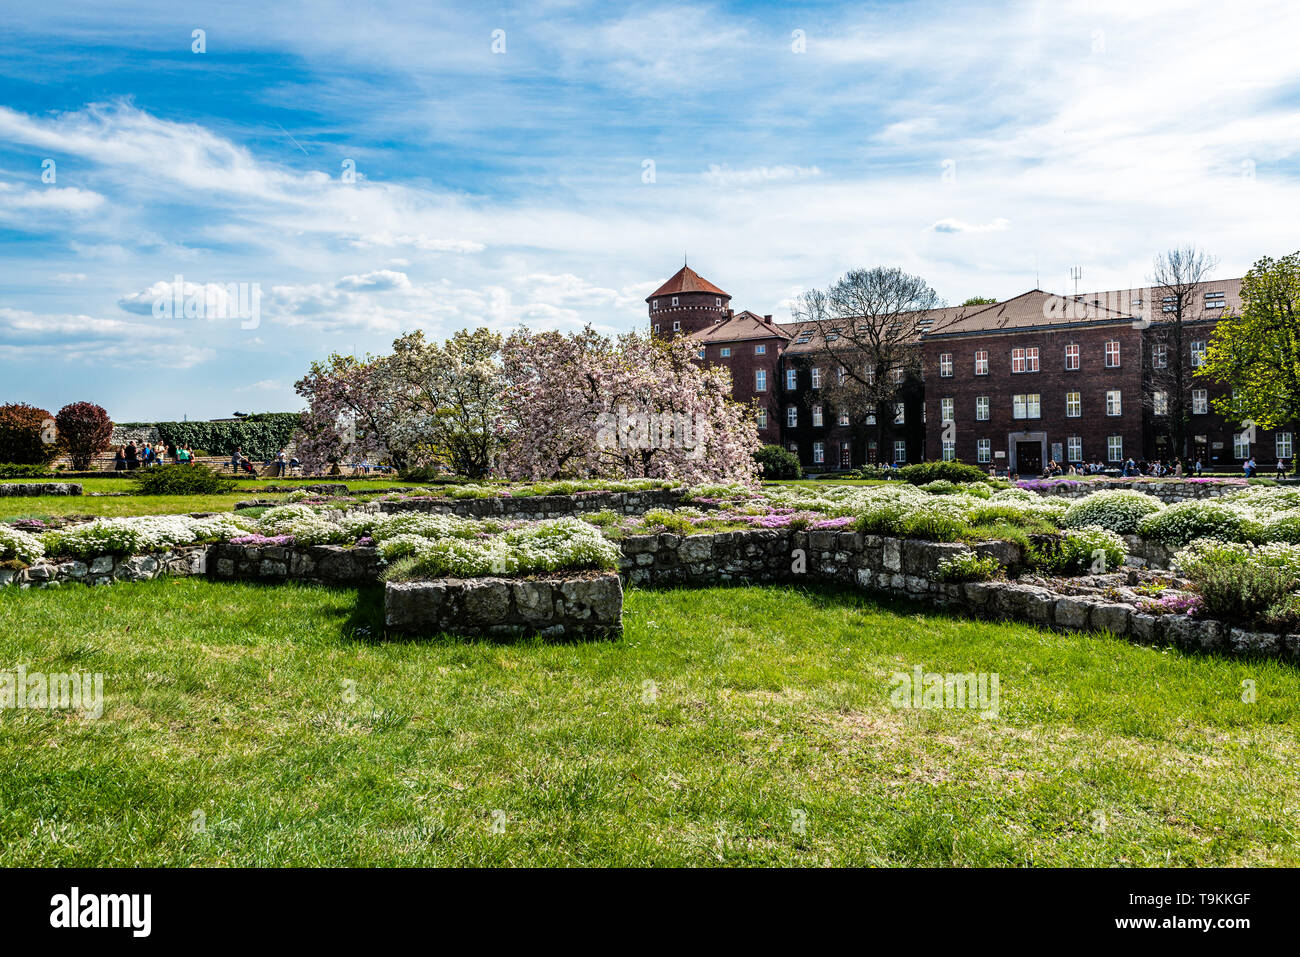 KRAKOW, POLAND - APRIL 19, 2019: Wawel Royal Castle and and courtyard in Krakow, Poland. - Stock Image